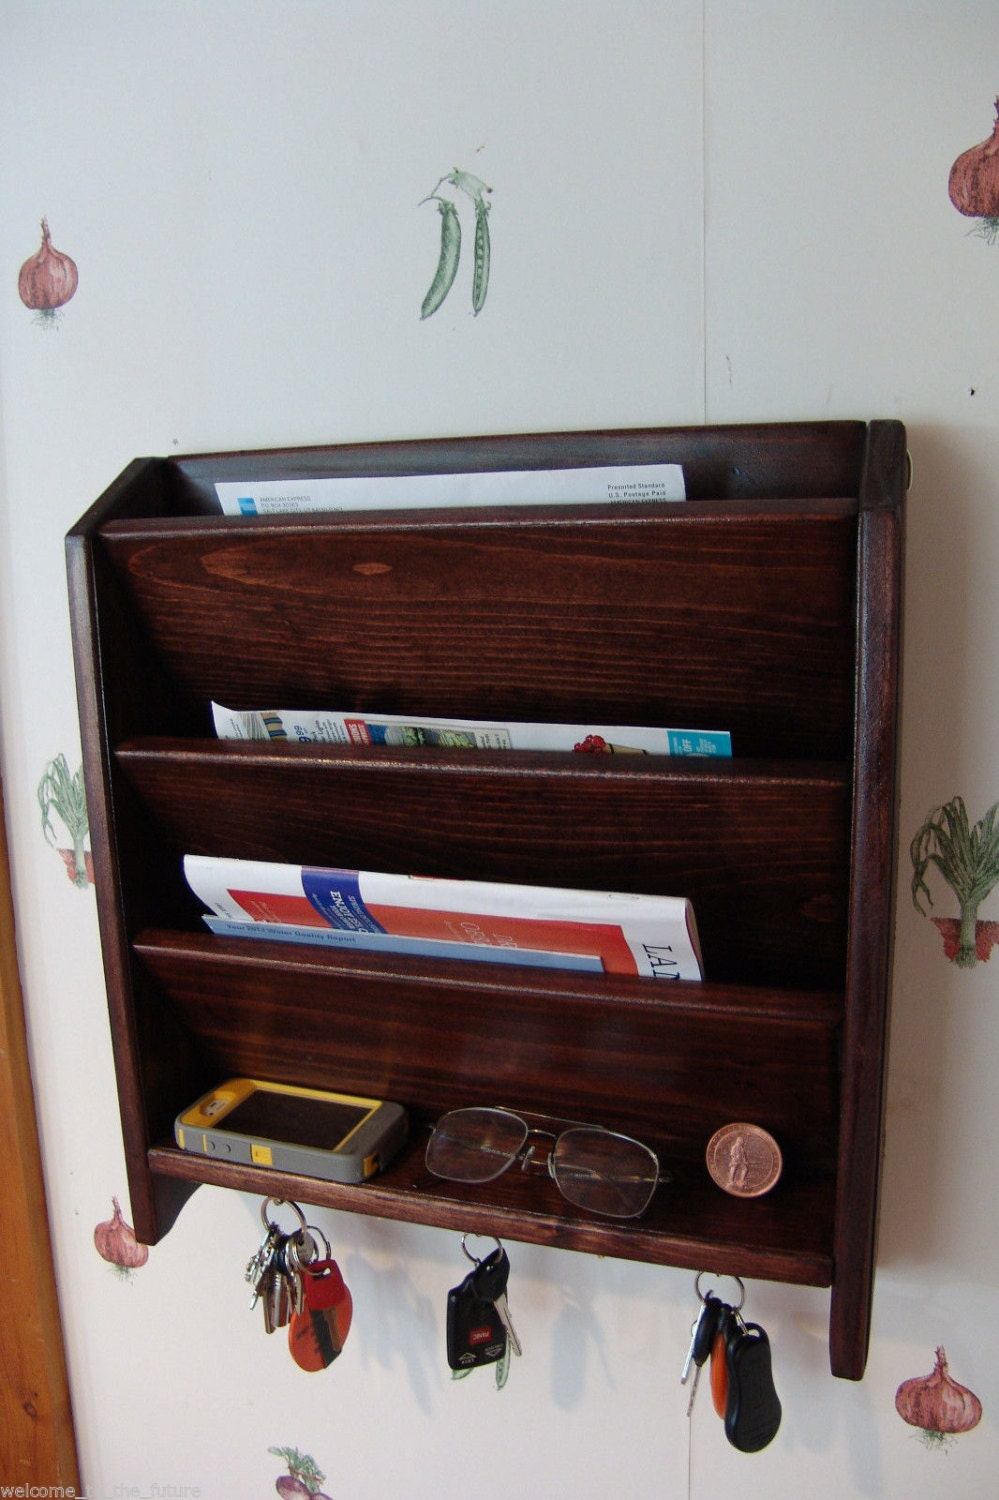 mail letter rack handcrafted wood organizer key holder sorter With letter organizer and key rack